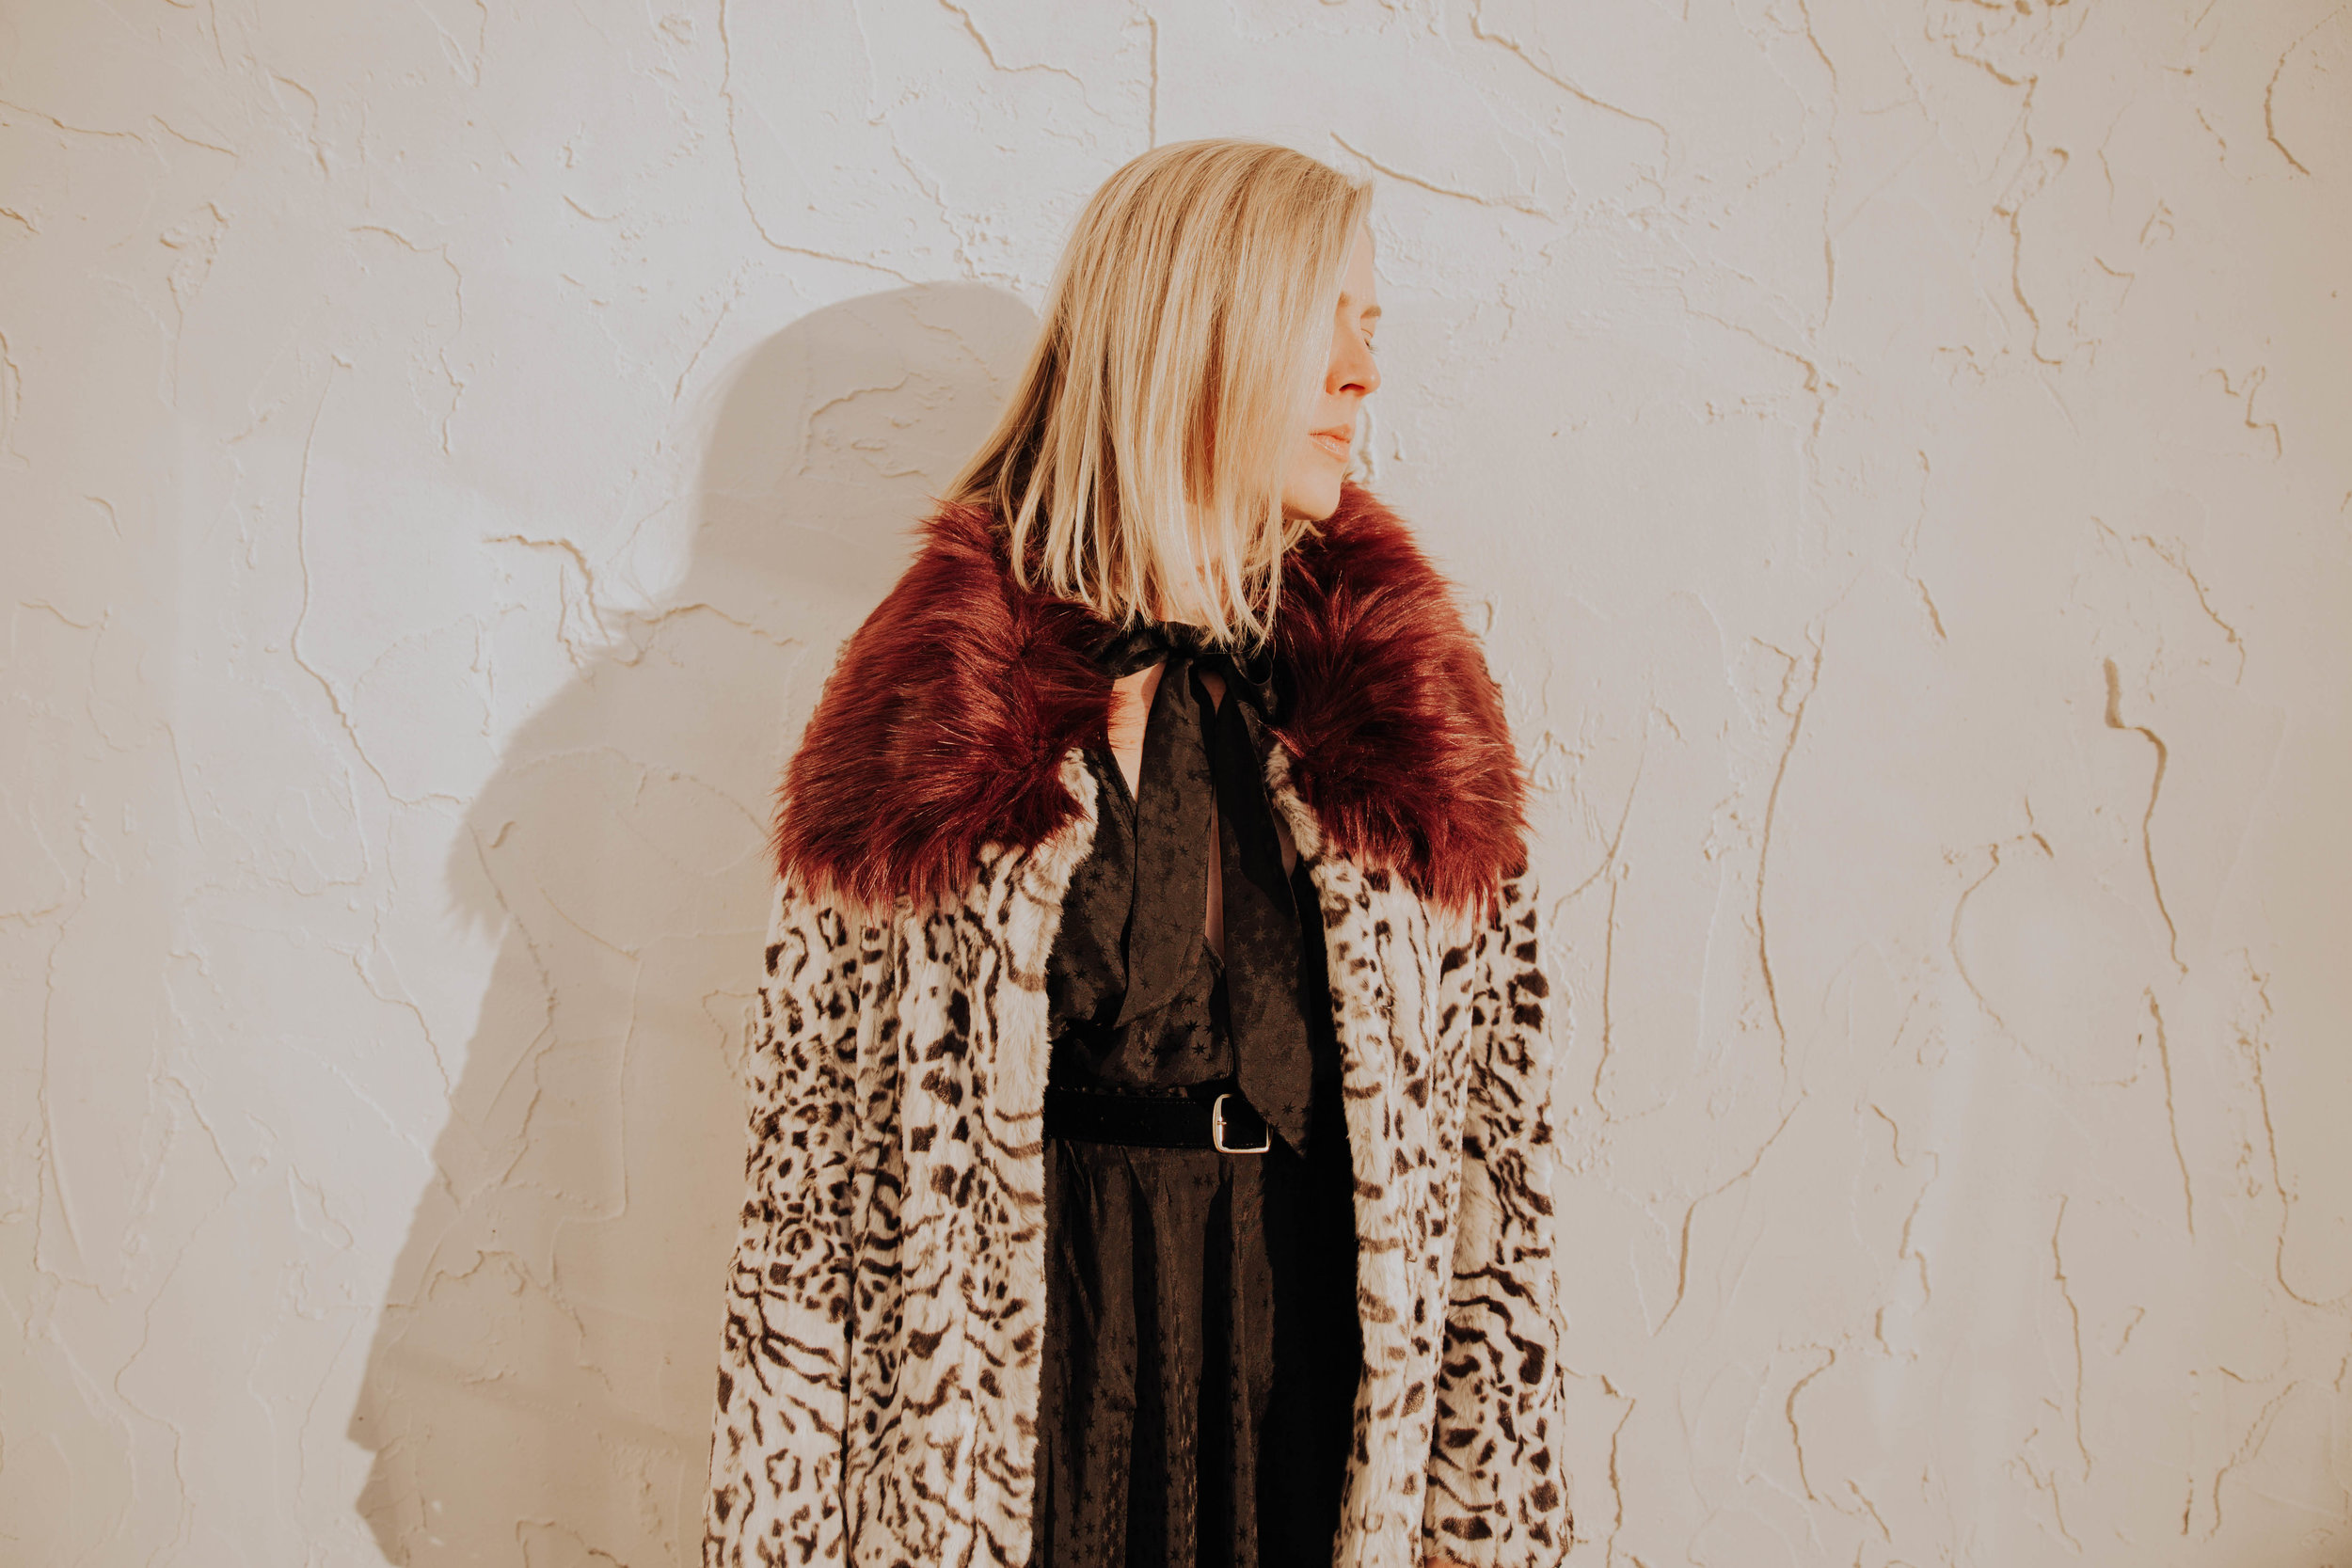 The Borrowed Babes Fashion Blogger Stephanie Mack Kearney wearing Unreal Fur Coat and Philosophy di Lorenzo Serafini from Rent the Runway